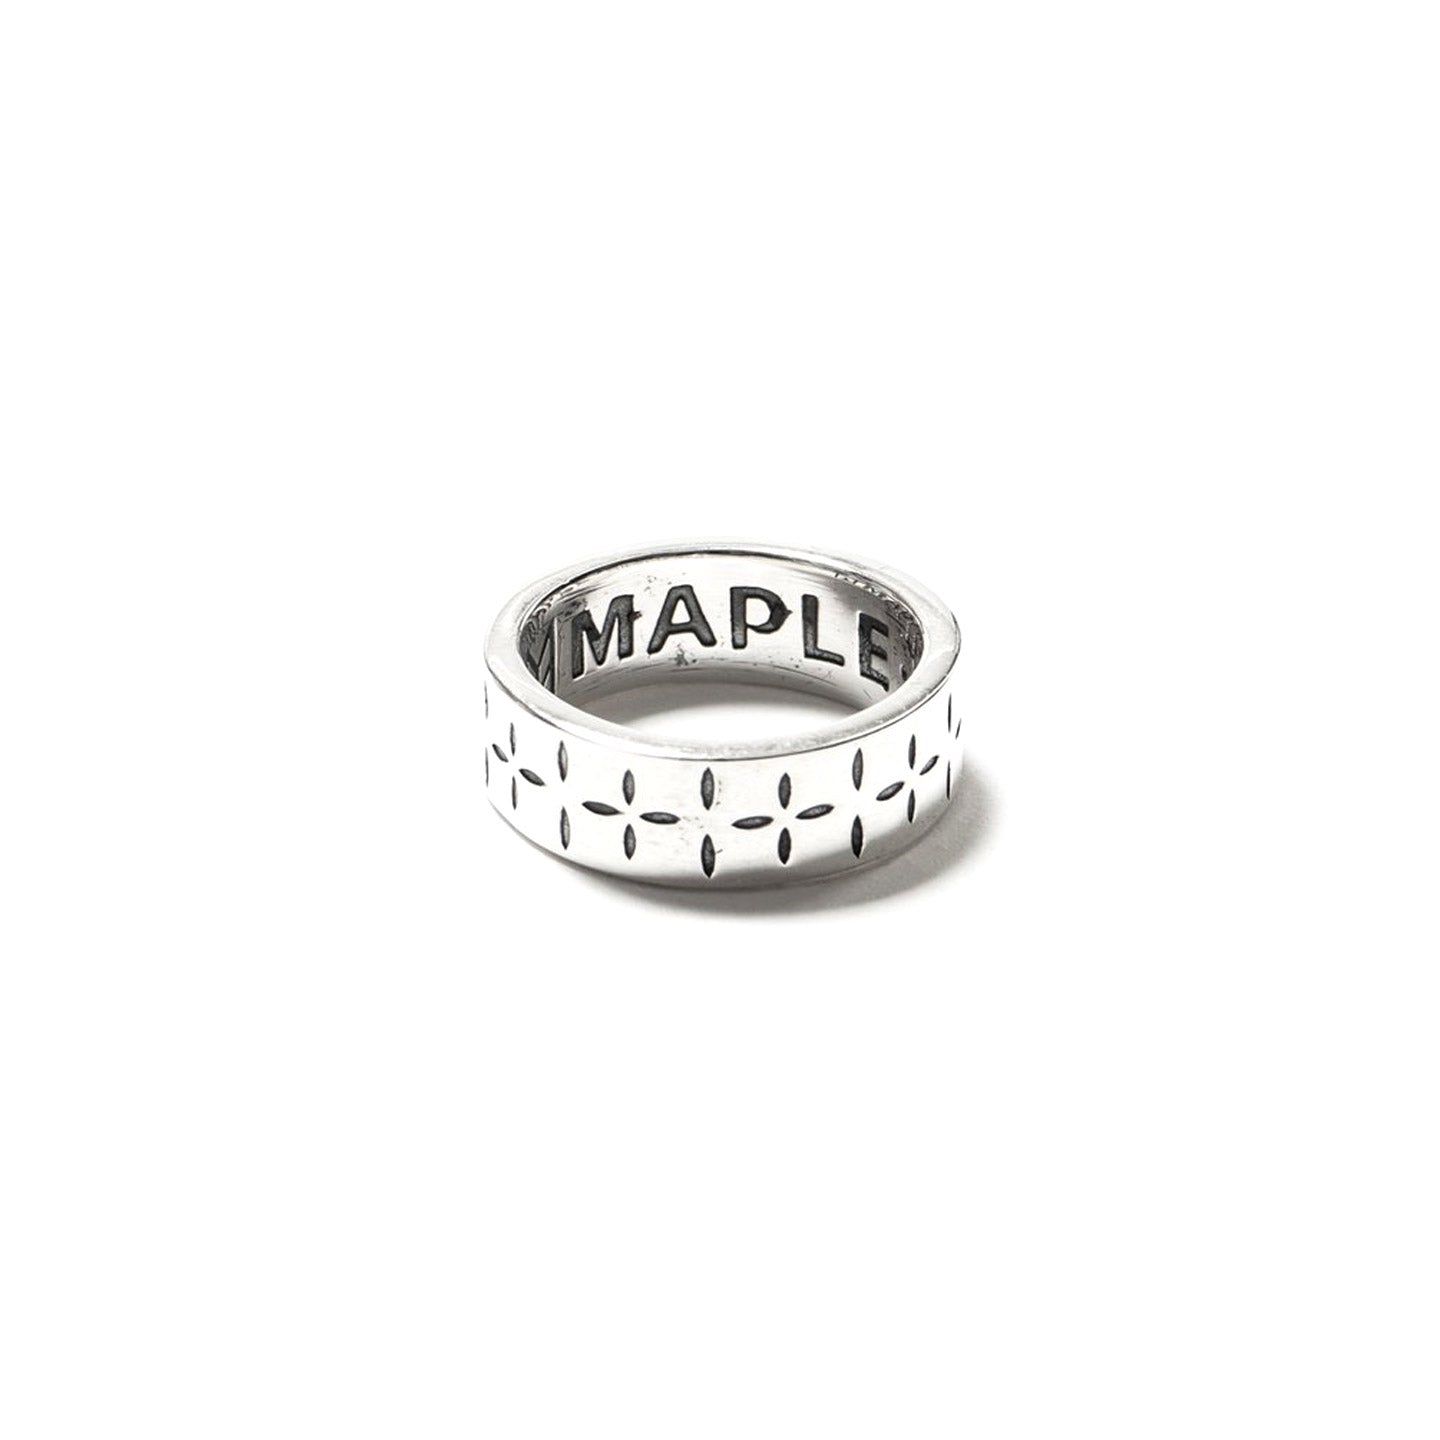 MAPLE BANDANA RING SILVER 925